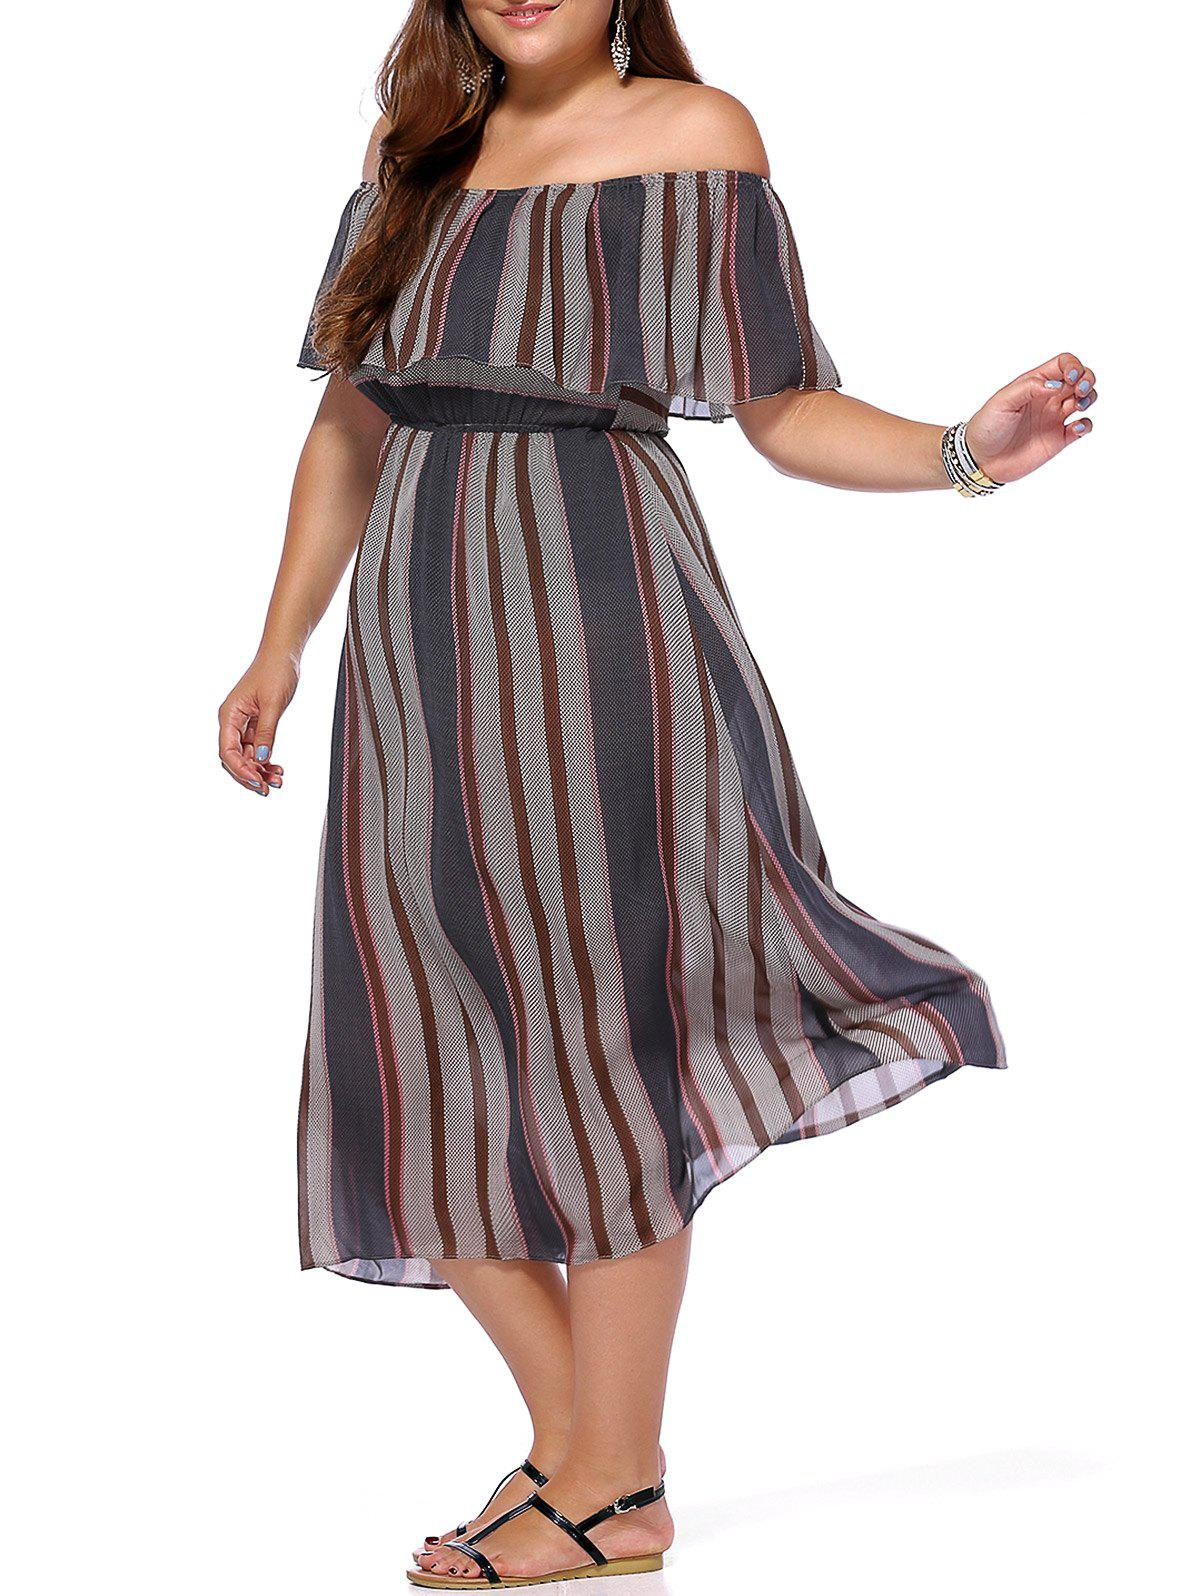 Chic Plus Size Striped Off-The-Shoulder Women's Dress - GRAY ONE SIZE(FIT SIZE L TO 3XL)